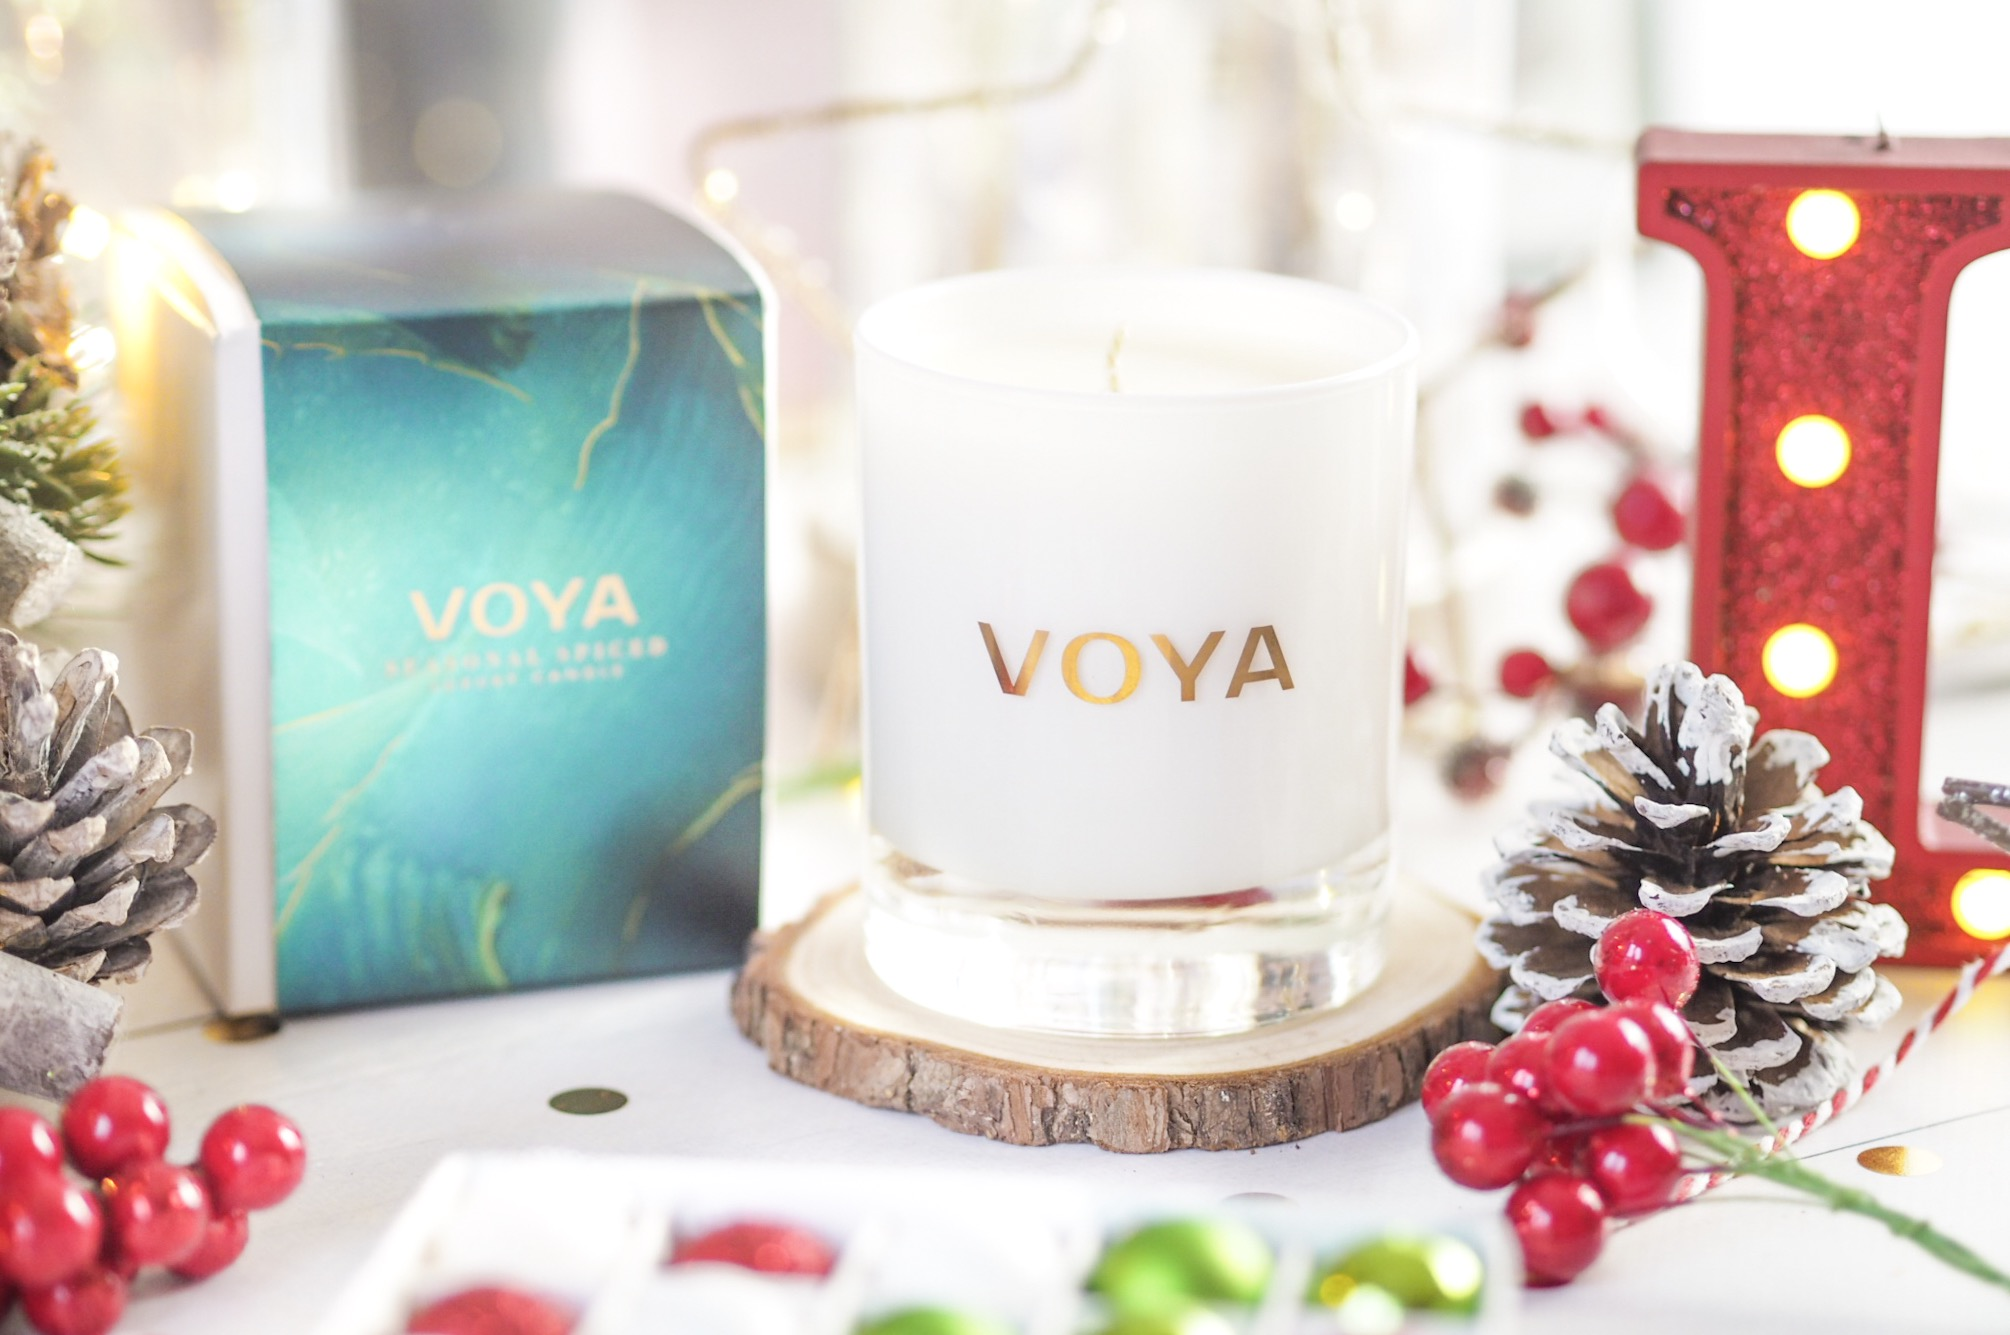 Voya Seasonal Spiced Scented Candle